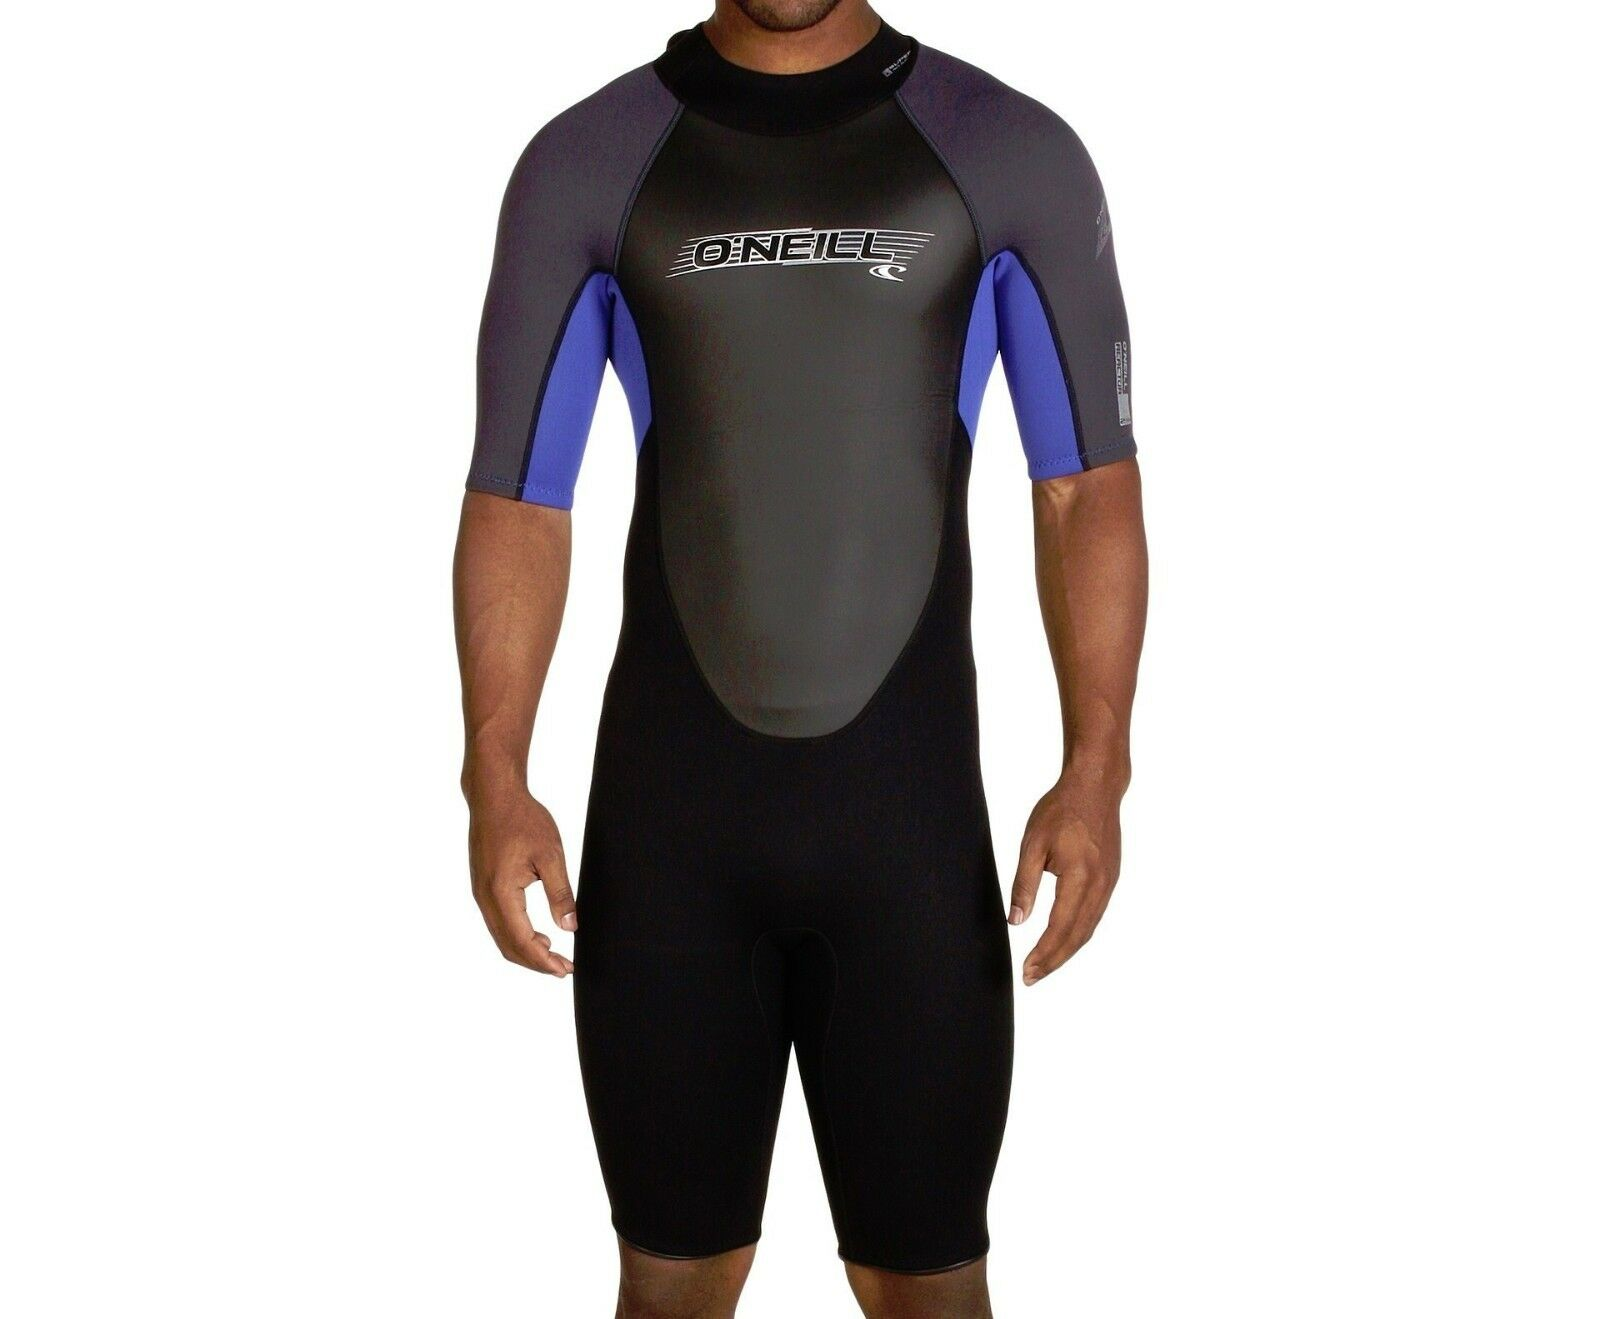 O'NEILL Men's 2mm REACTOR S S Springsuit - BLK PAC GRAPH - Small - NWT